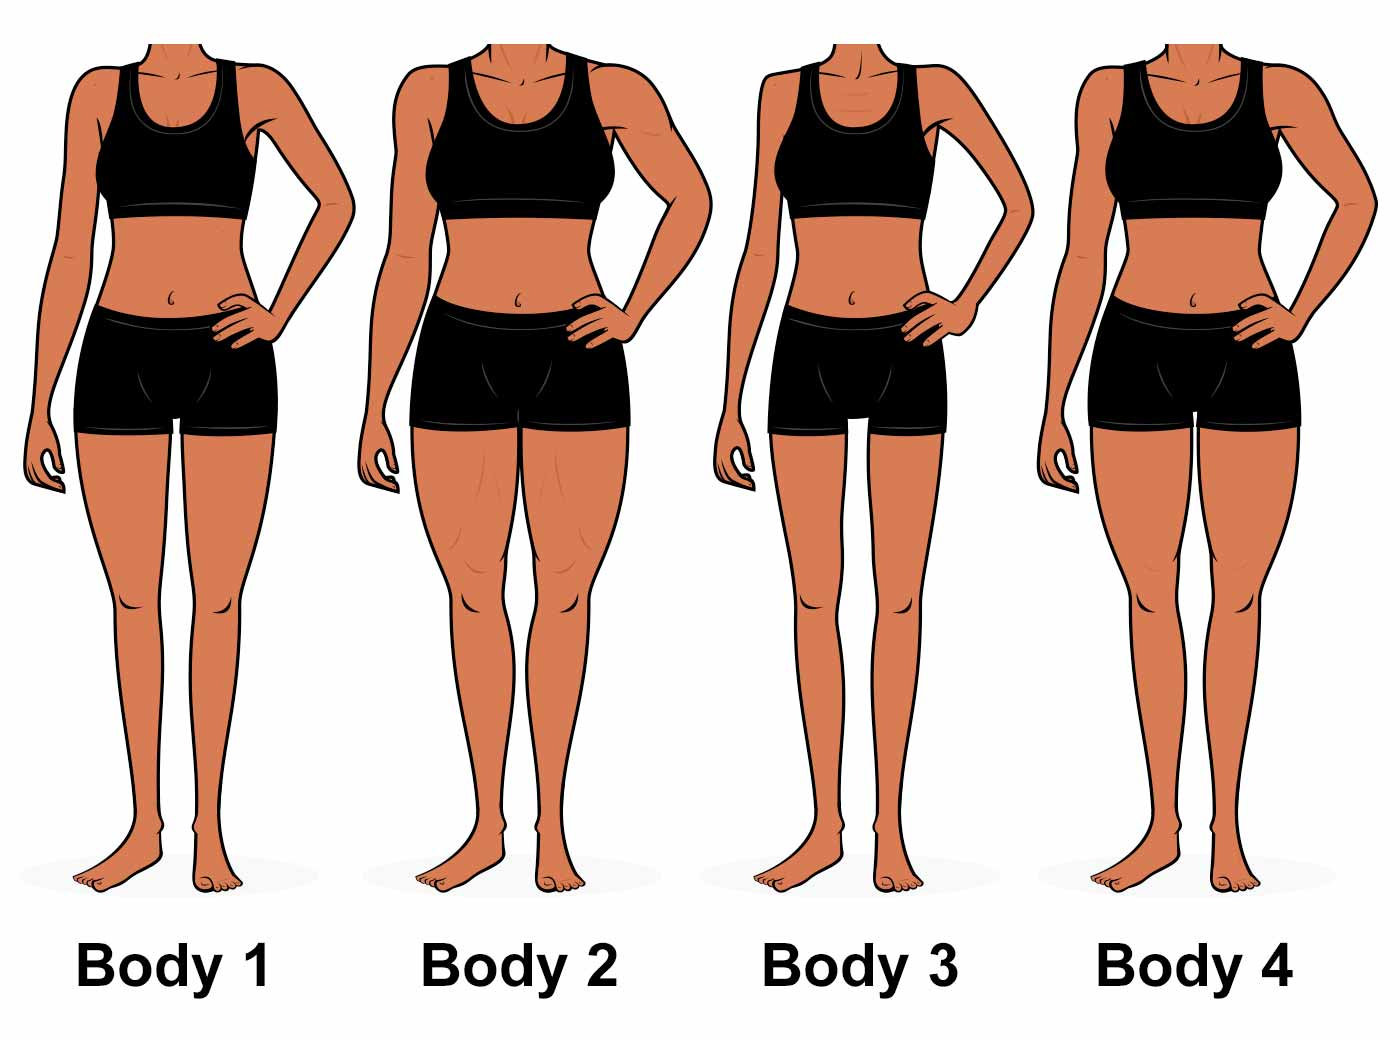 Survey illustration showing varying degrees of female muscularity.